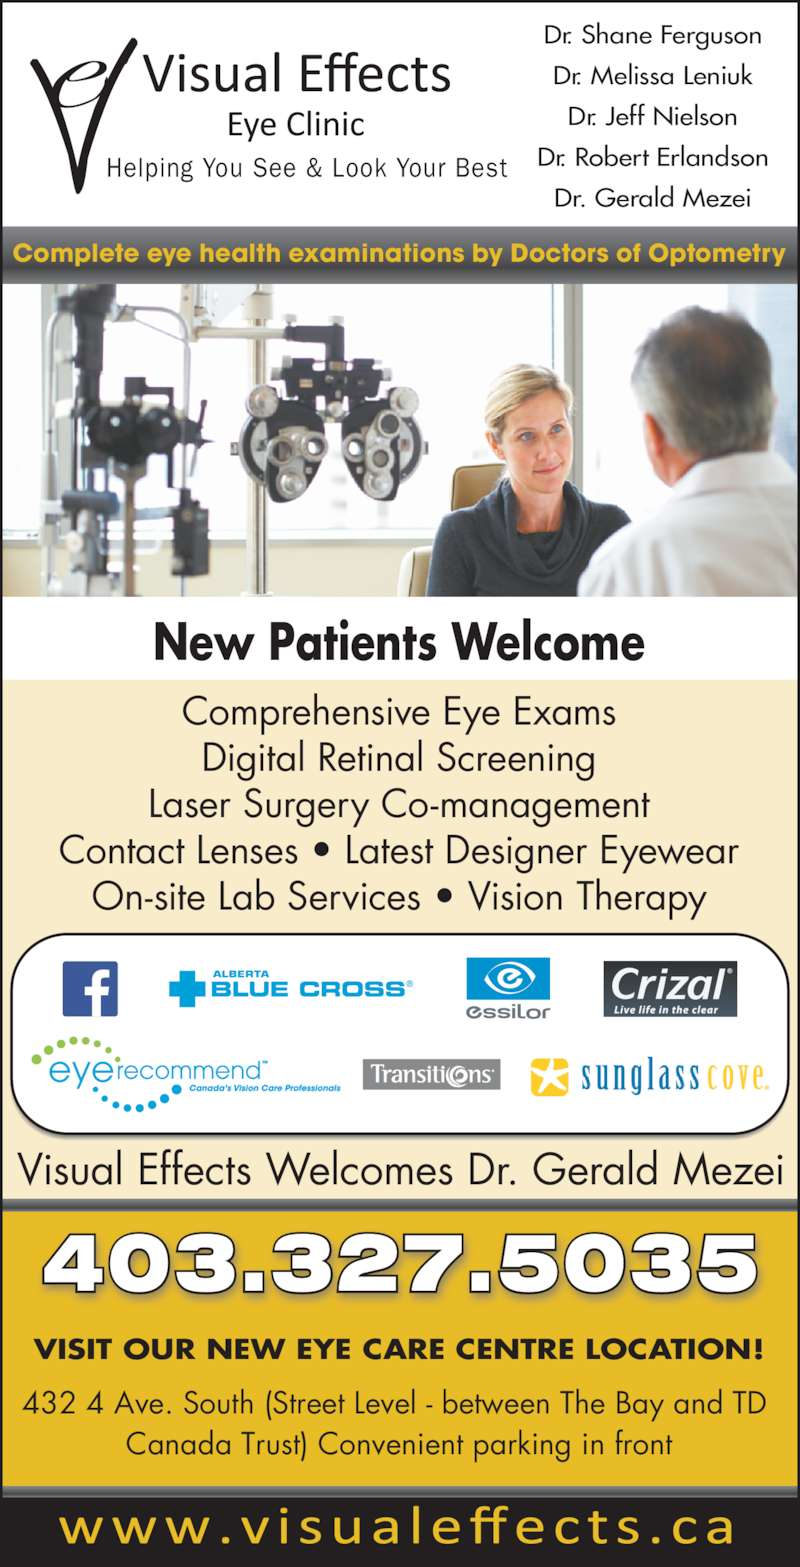 Visual Effects (403-327-5035) - Display Ad - Complete eye health examinations by Doctors of Optometry Comprehensive Eye Exams Digital Retinal Screening Laser Surgery Co-management Contact Lenses ? Latest Designer Eyewear On-site Lab Services ? Vision Therapy Visual Effects Welcomes Dr. Gerald Mezei New Patients Welcome 403.327.5035 VISIT OUR NEW EYE CARE CENTRE LOCATION! 432 4 Ave. South (Street Level - between The Bay and TD  Canada Trust) Convenient parking in front Dr. Shane Ferguson Dr. Melissa Leniuk Dr. Jeff Nielson Dr. Robert Erlandson Dr. Gerald Mezei Helping You See & Look Your Best